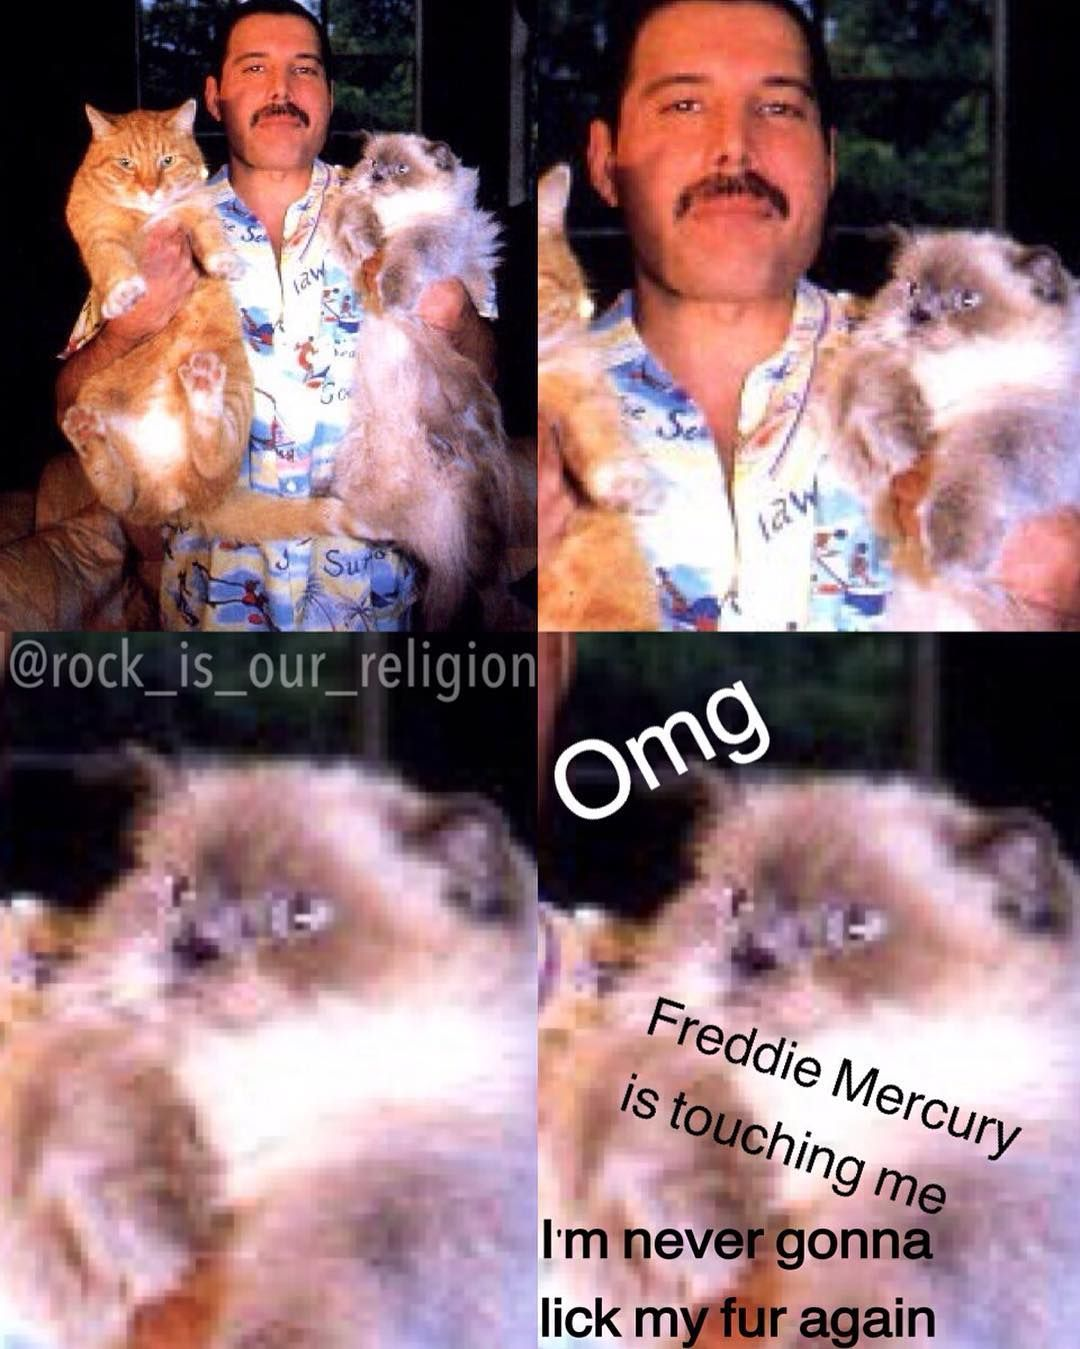 #bandmemes #musicmemes #bandadda #randomThursday #06 I DON'T KNOW what is this I was just bored and today is Random Thursday... YOLO! ...eheh. Cats. :3 Viky #freddiemercury #queen #farrokhbulsara #theonlyqueen #rock #music #rocknroll #meme #rockmeme #rockmemes #freddiemercurymeme #queenmeme #catmeme #Musicmeme #rockjokes